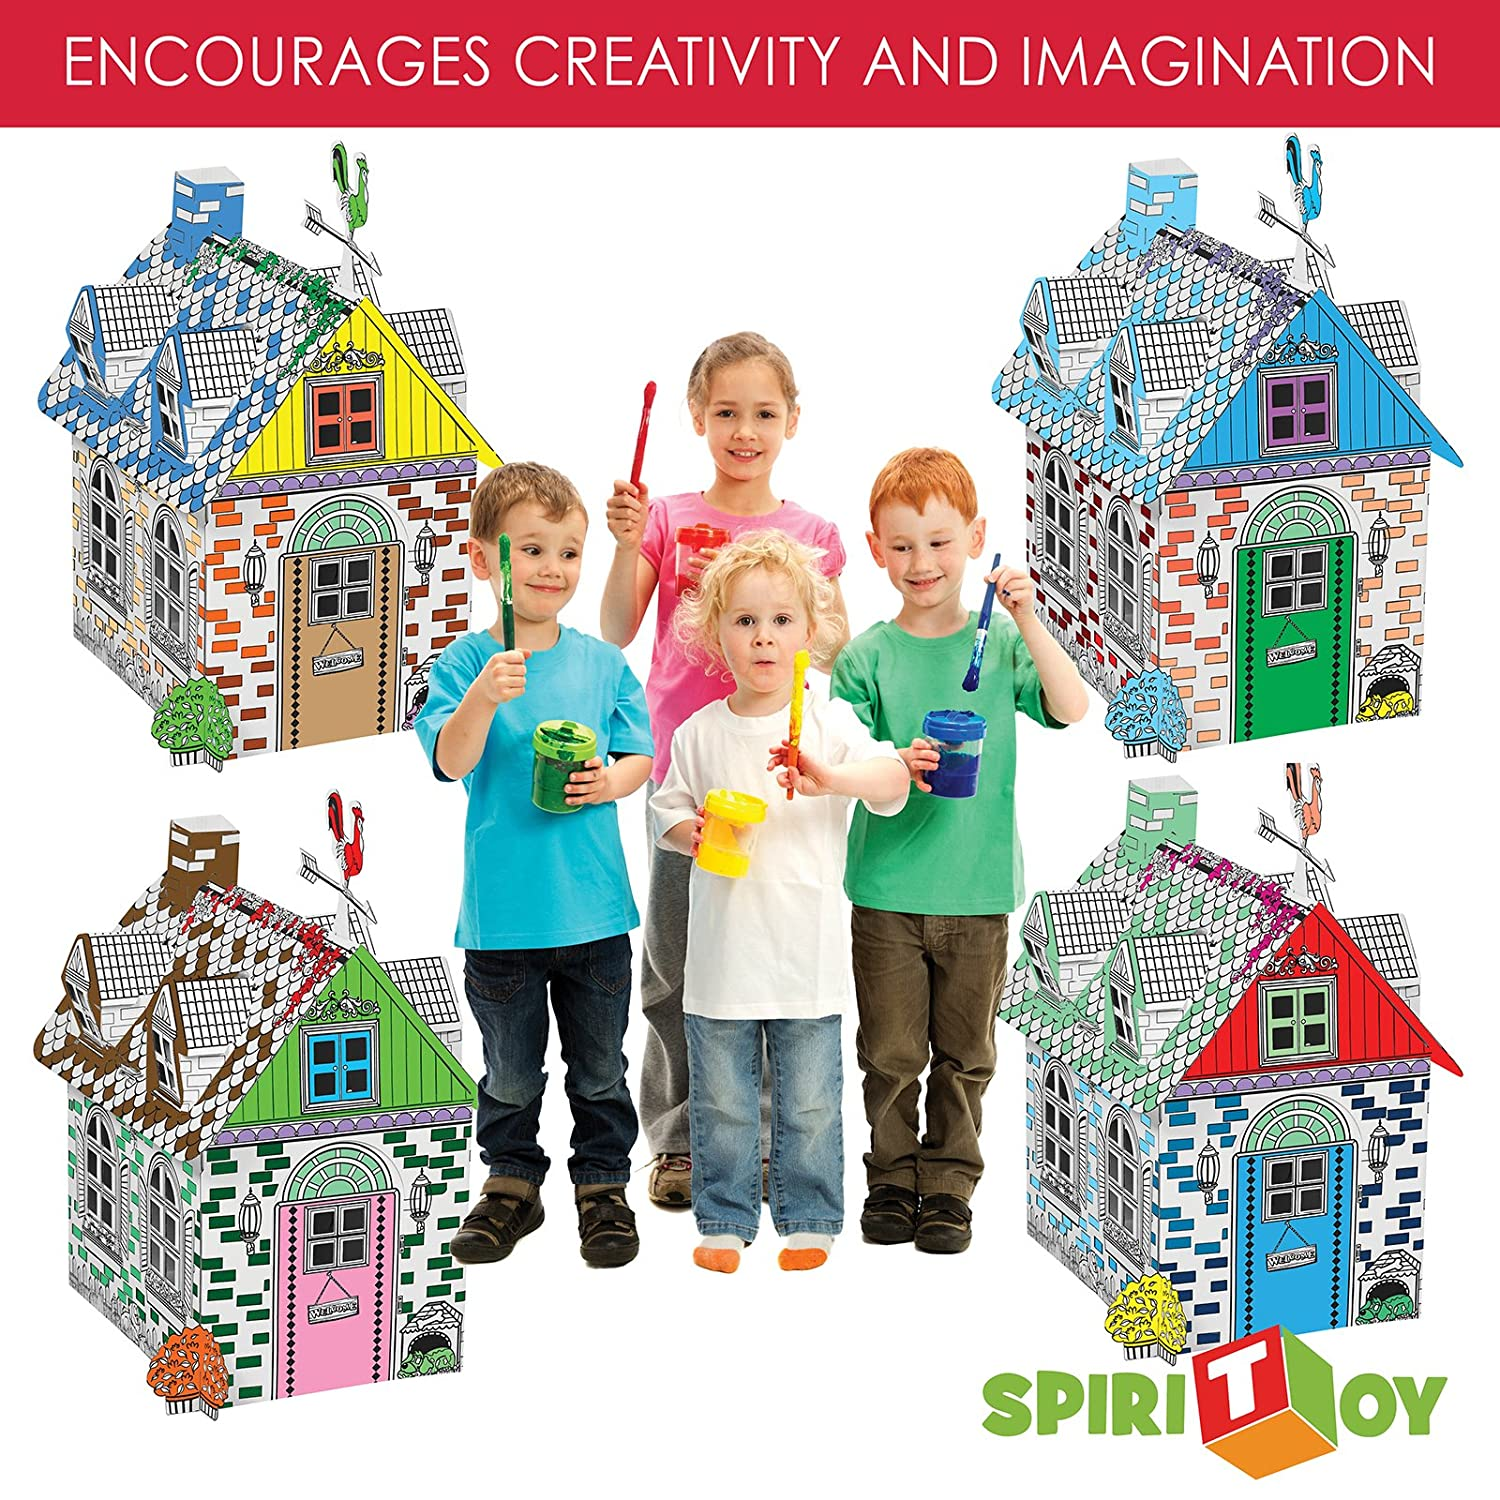 Easy Assembly Fast Fold My Little Farm House Cardboard Playhouse by Spiritoy BODYHEALT Inc MMRH-1 20 Inches Tall Corrugated Color In Coloring Play House for Kids